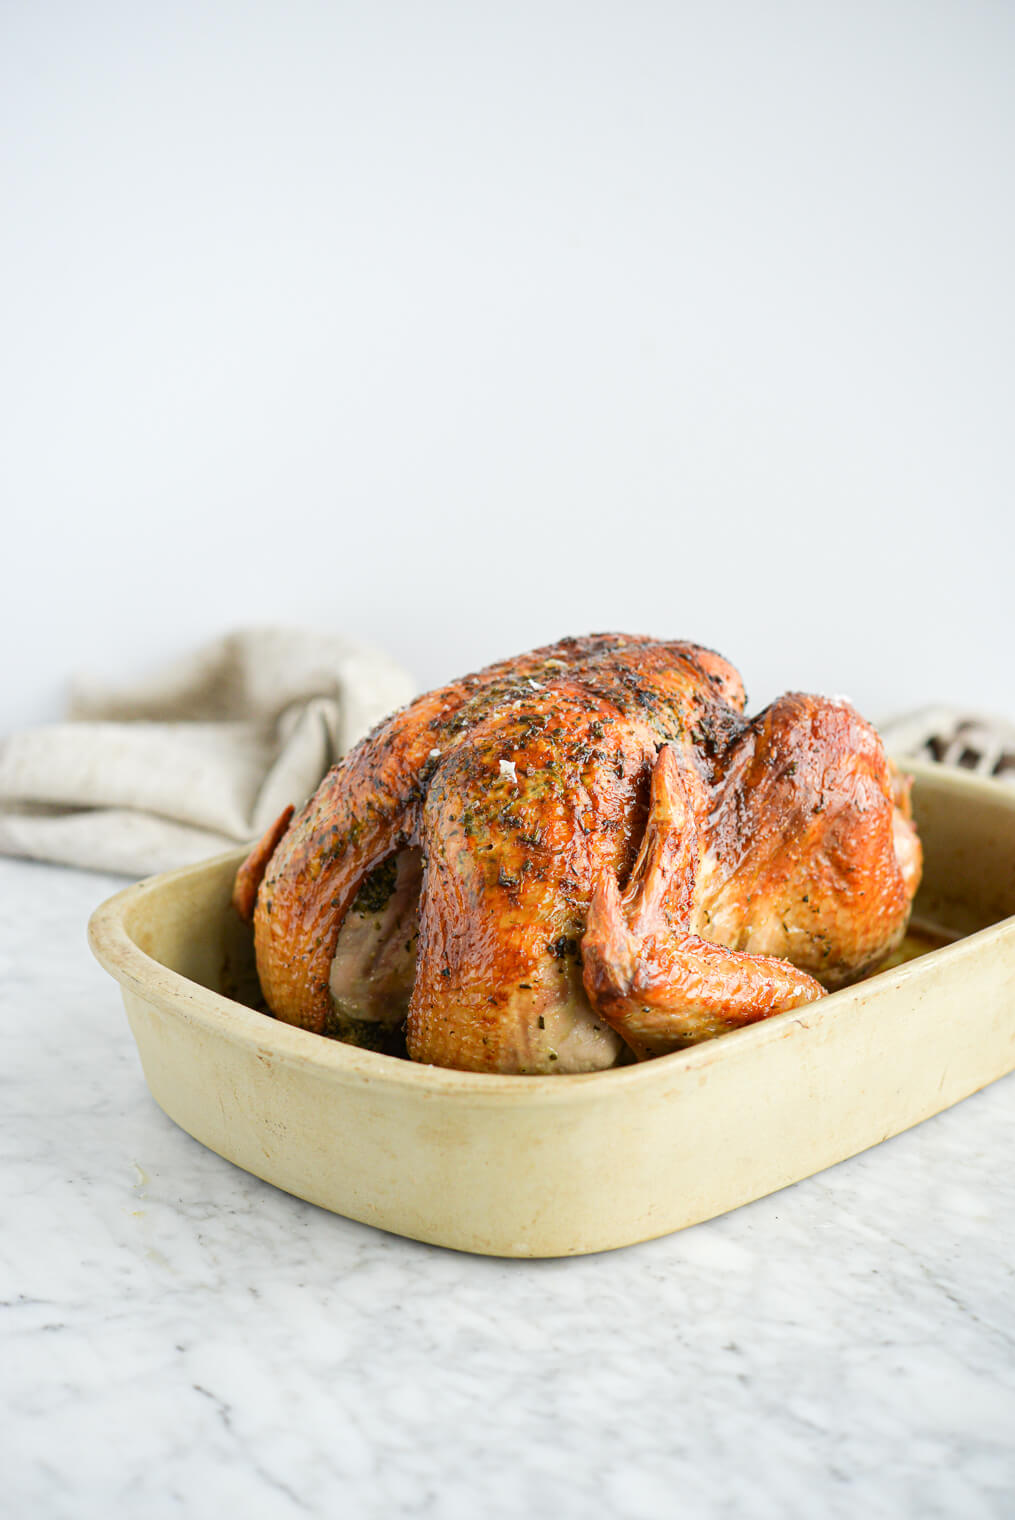 the side view of a whole roasted turkey sitting in a stone baking dish